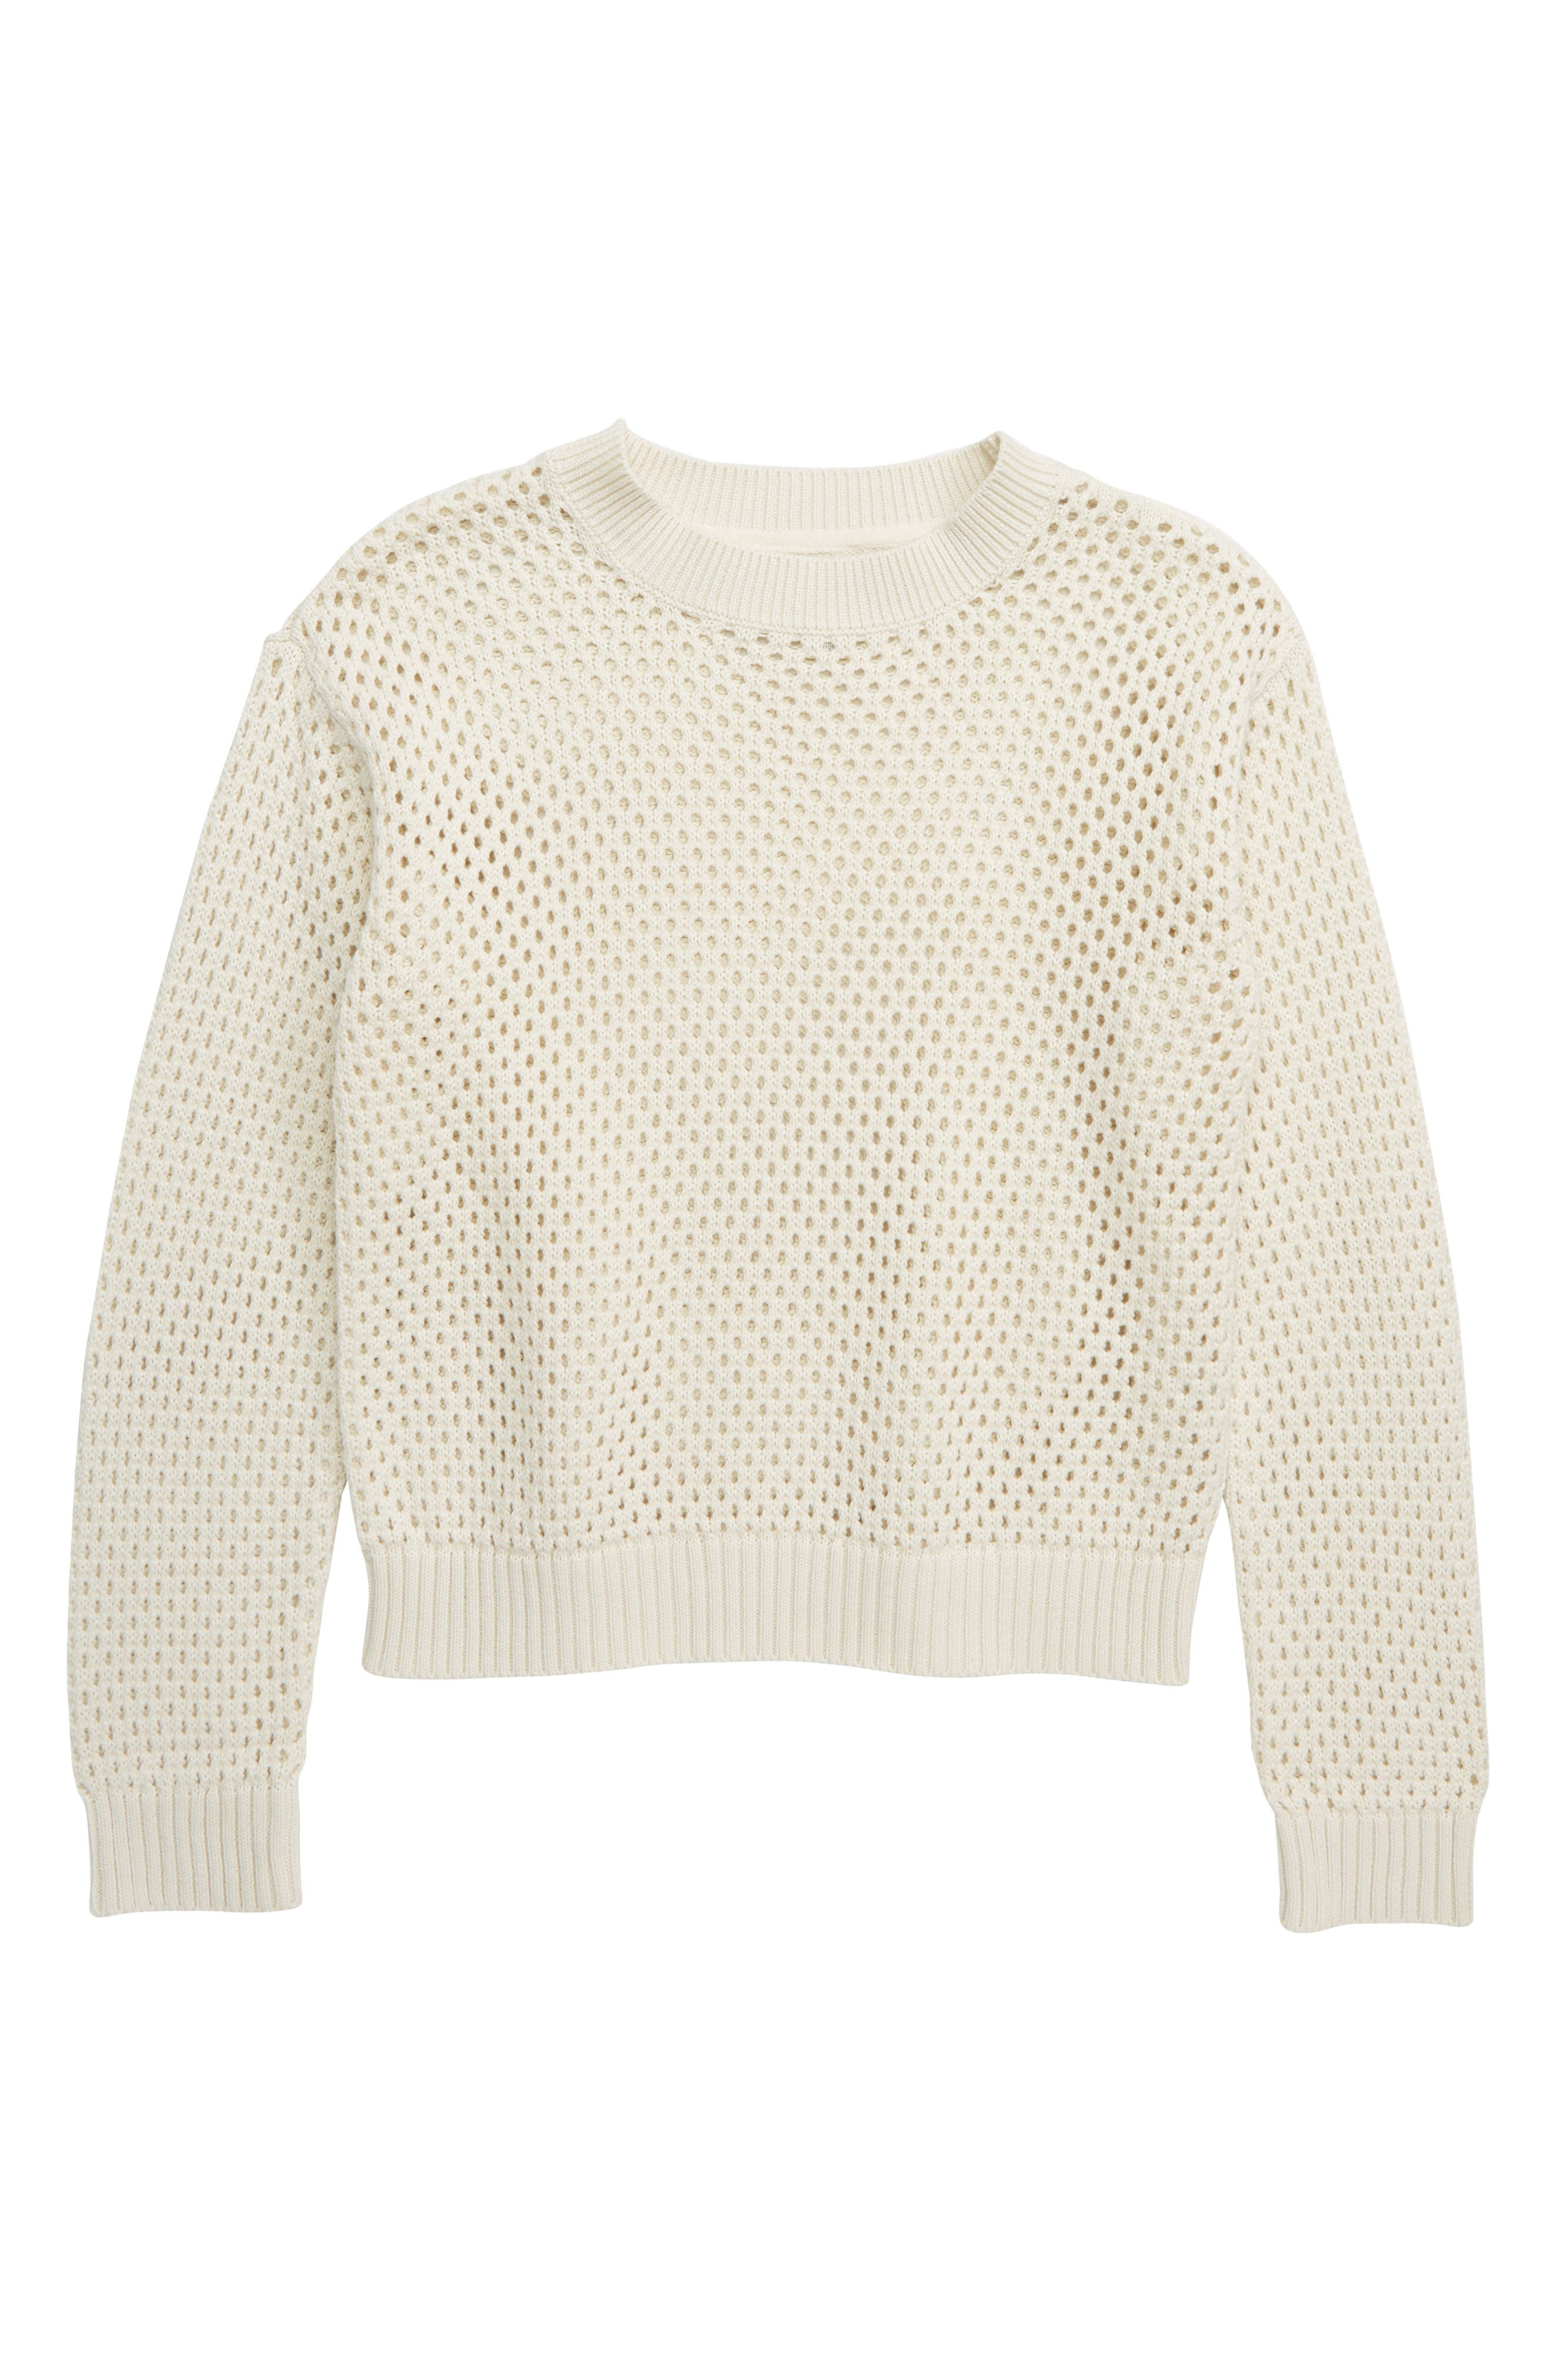 TREASURE & BOND Pointelle Sweater, Main, color, IVORY EGRET